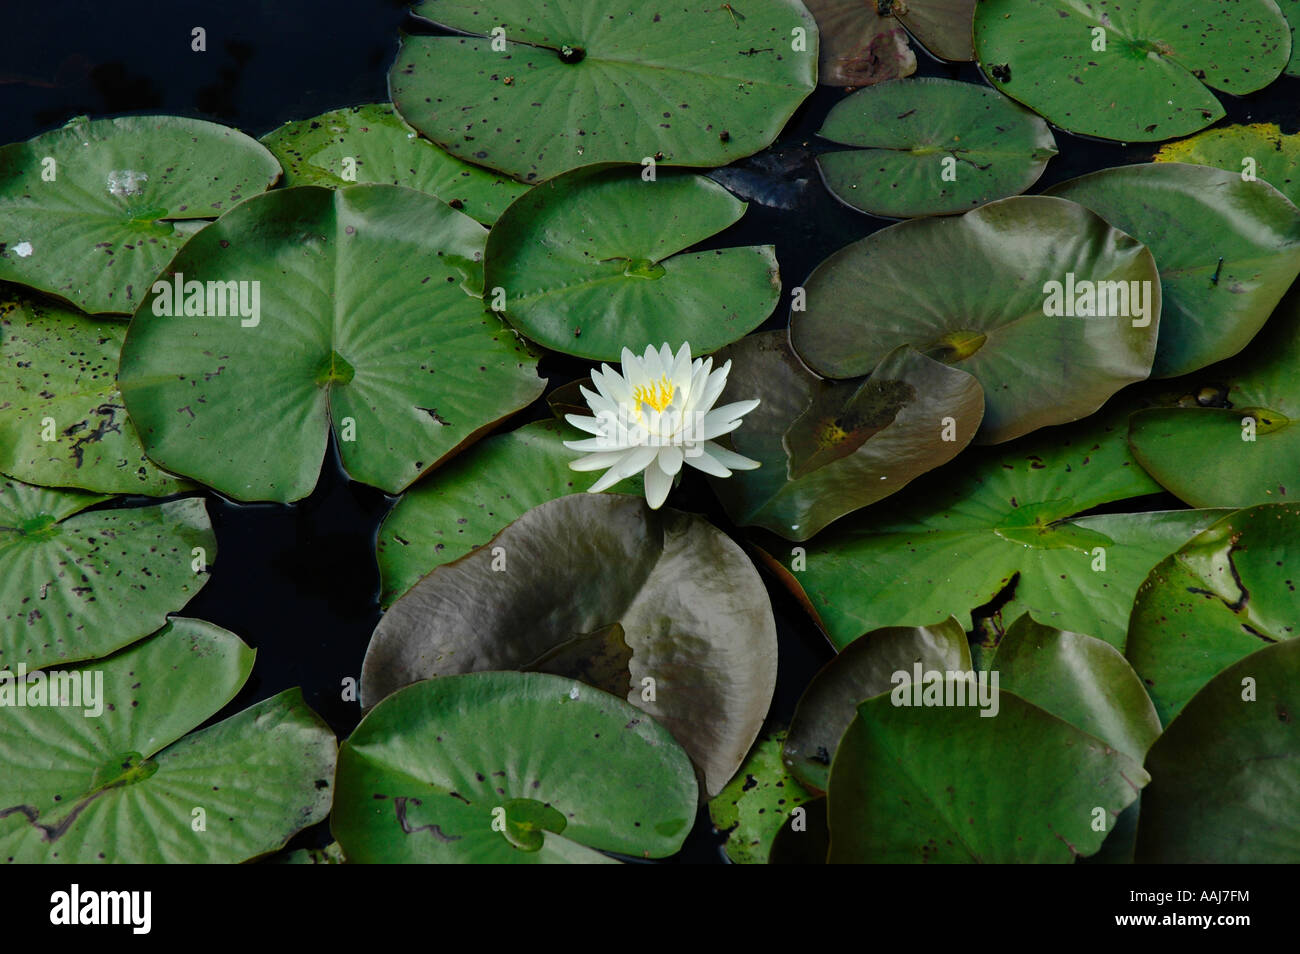 Water lily pads and flower in south carolina swamp stock photo water lily pads and flower in south carolina swamp izmirmasajfo